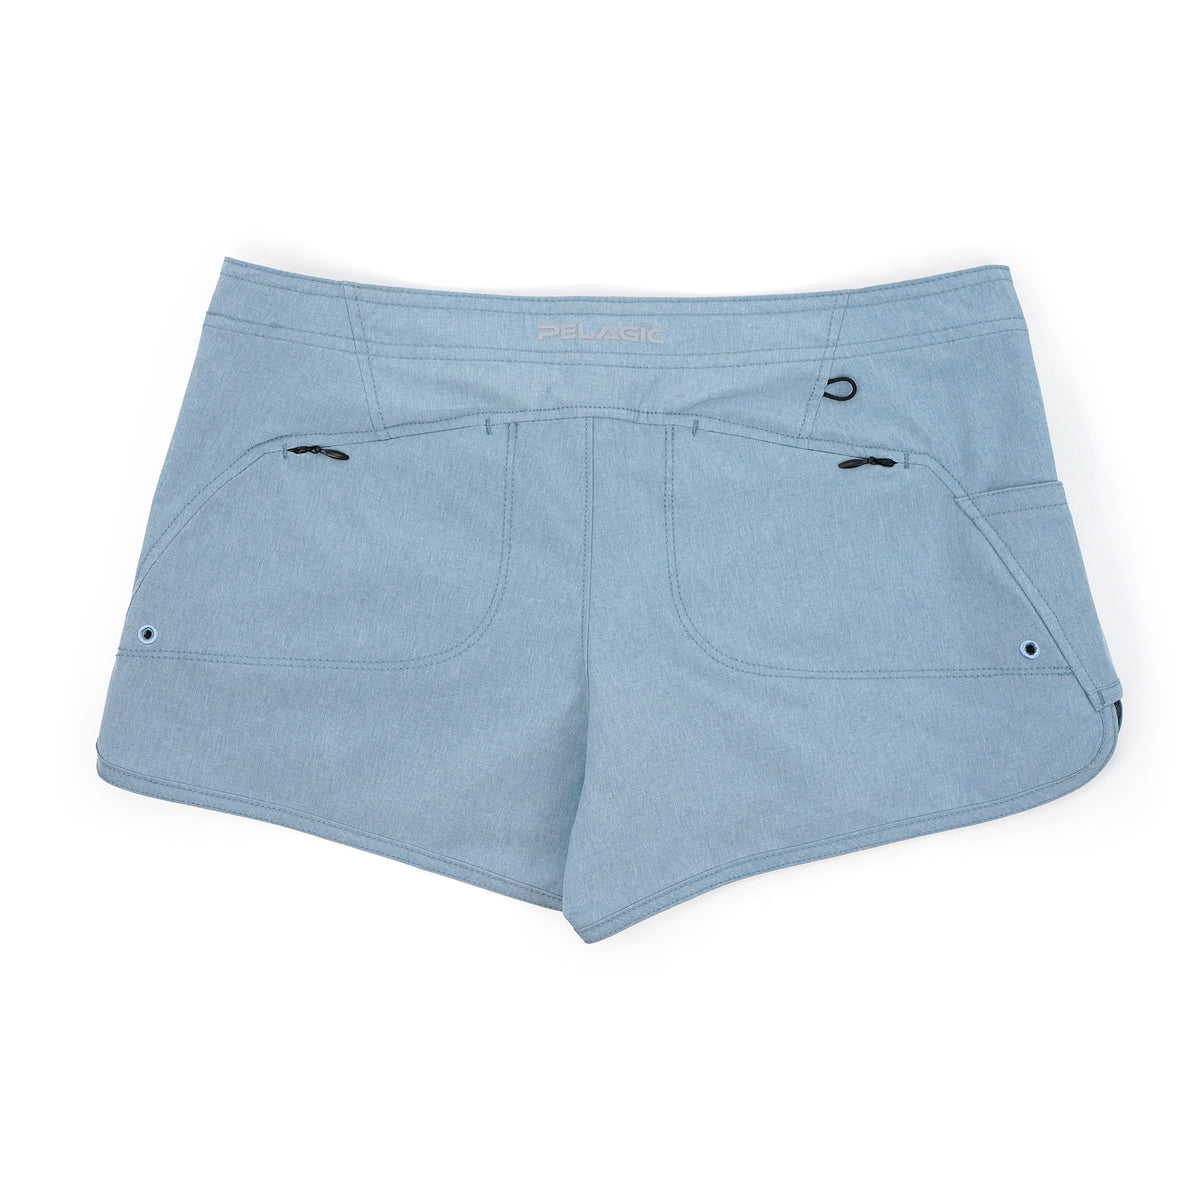 Deep Sea Hybrid Fishing Shorts - Womens Big Image - 2